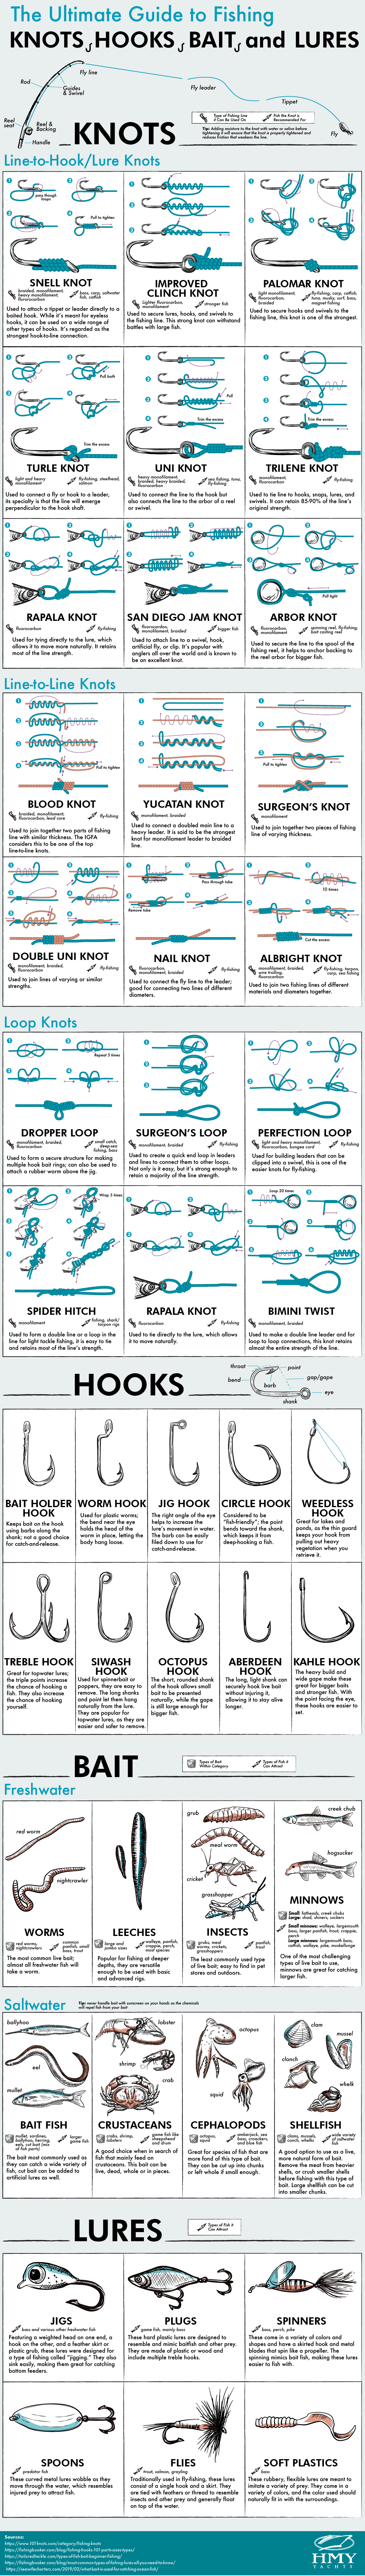 The Ultimate Fisherman's Guide to Knots, Hooks, Bait, and Lures